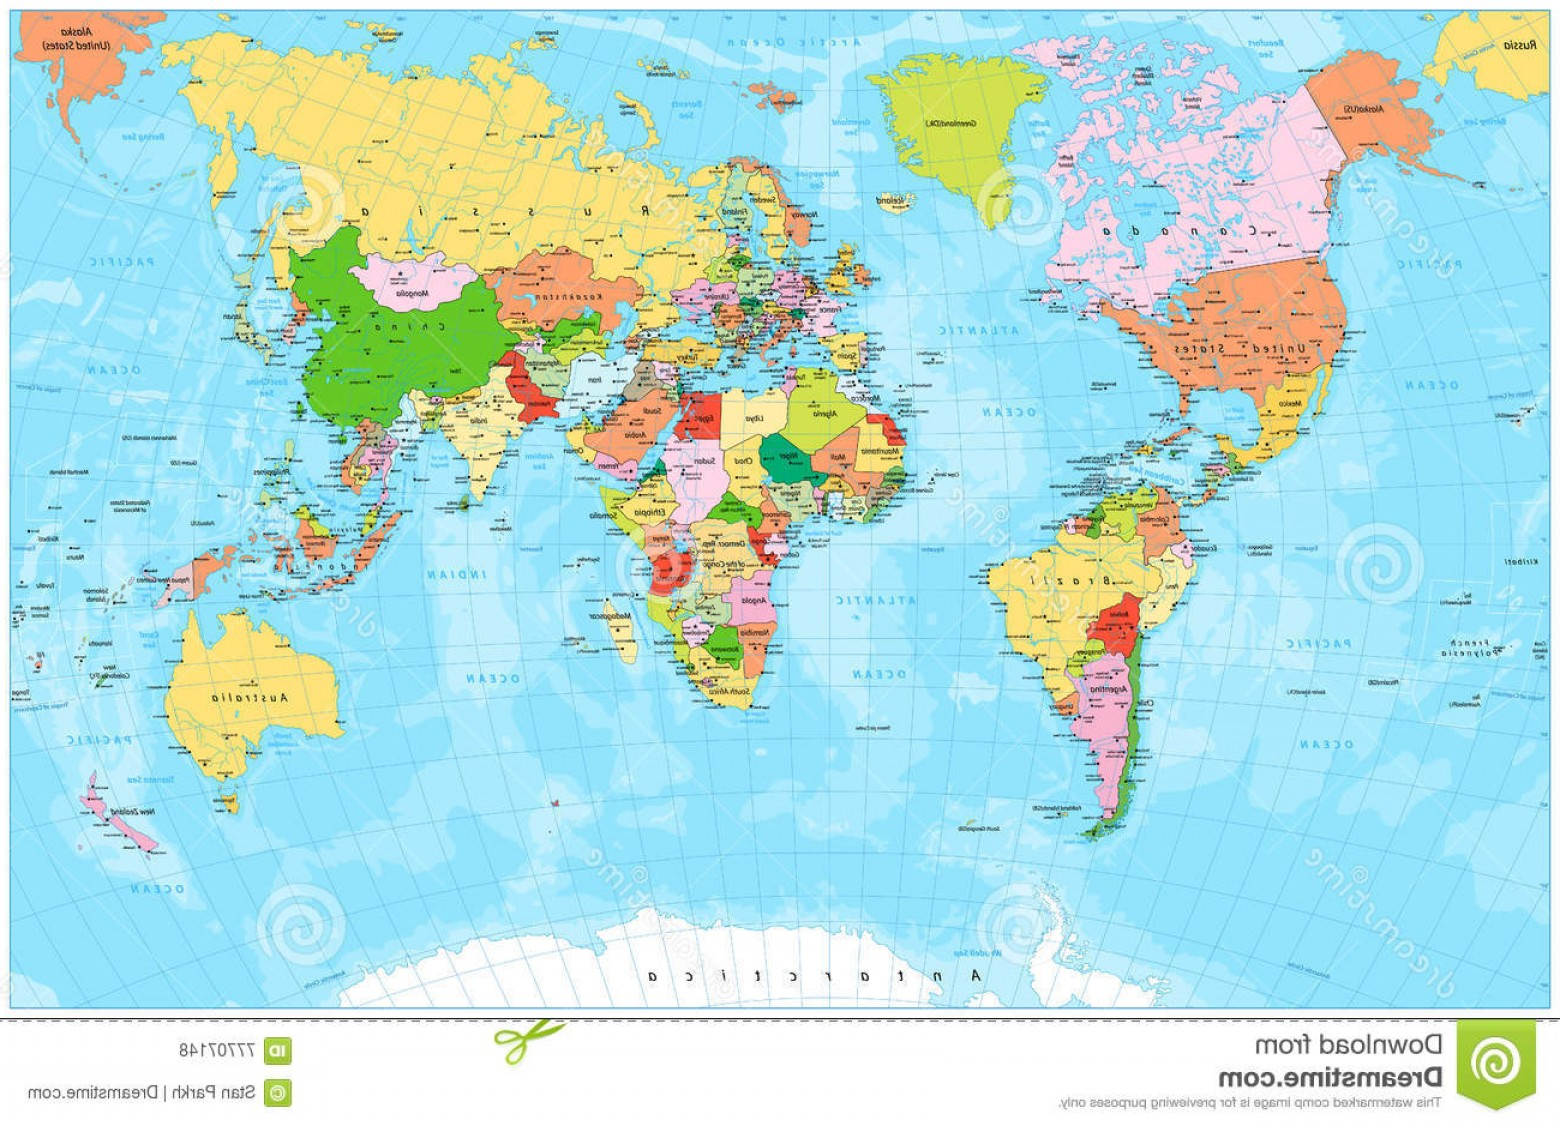 Vector World Map With Rivers: Stock Illustration Detailed Political World Map Capitals Rivers Lakes Vector Illustration Image